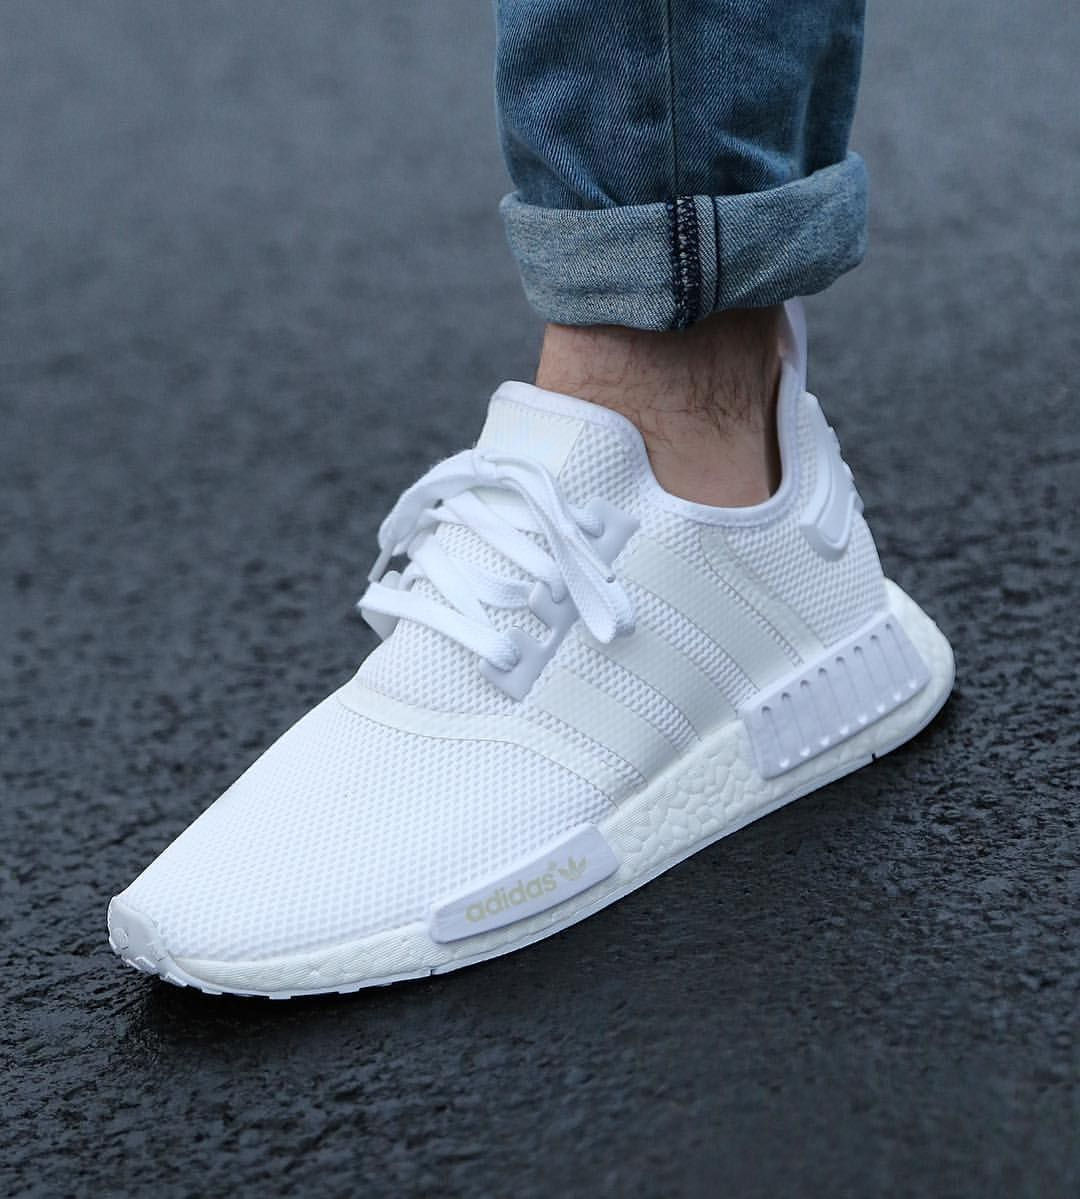 adidas nmd white men